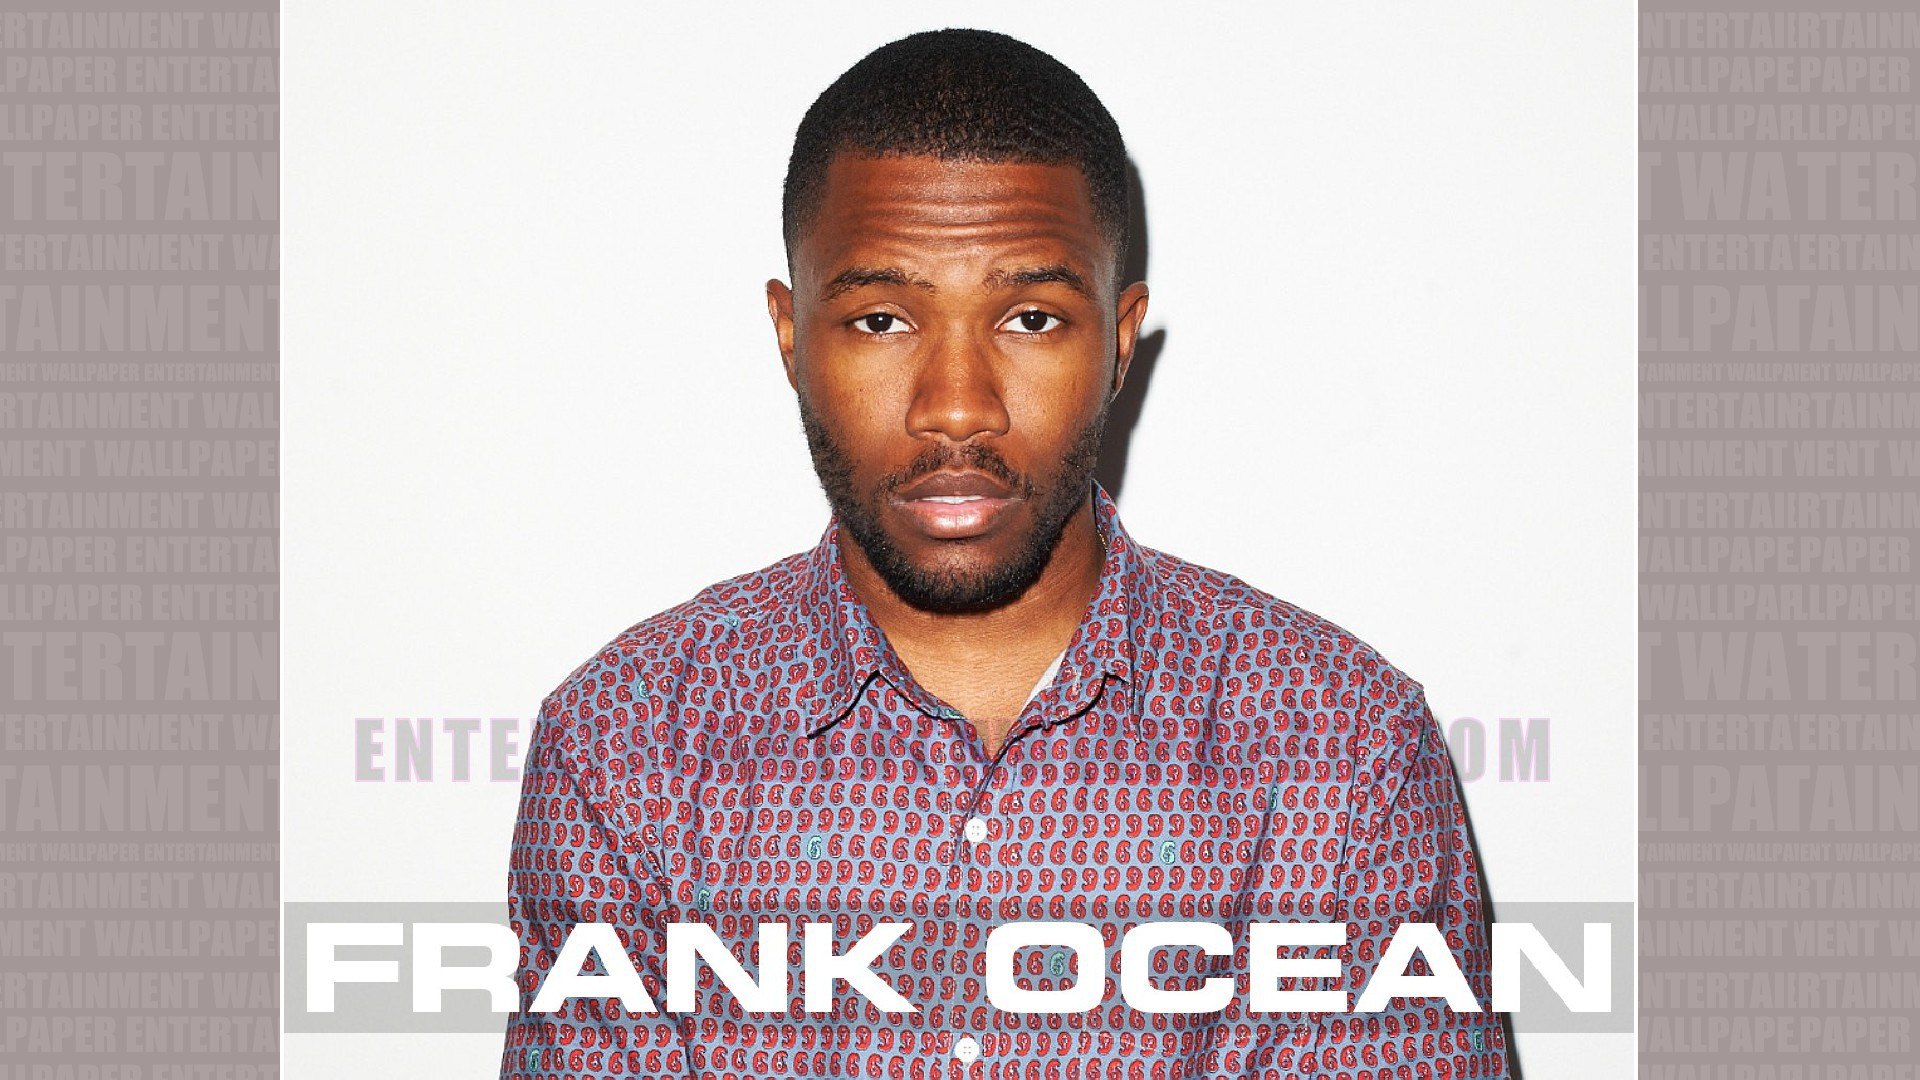 Frank Ocean Wallpapers Images Photos Pictures Backgrounds